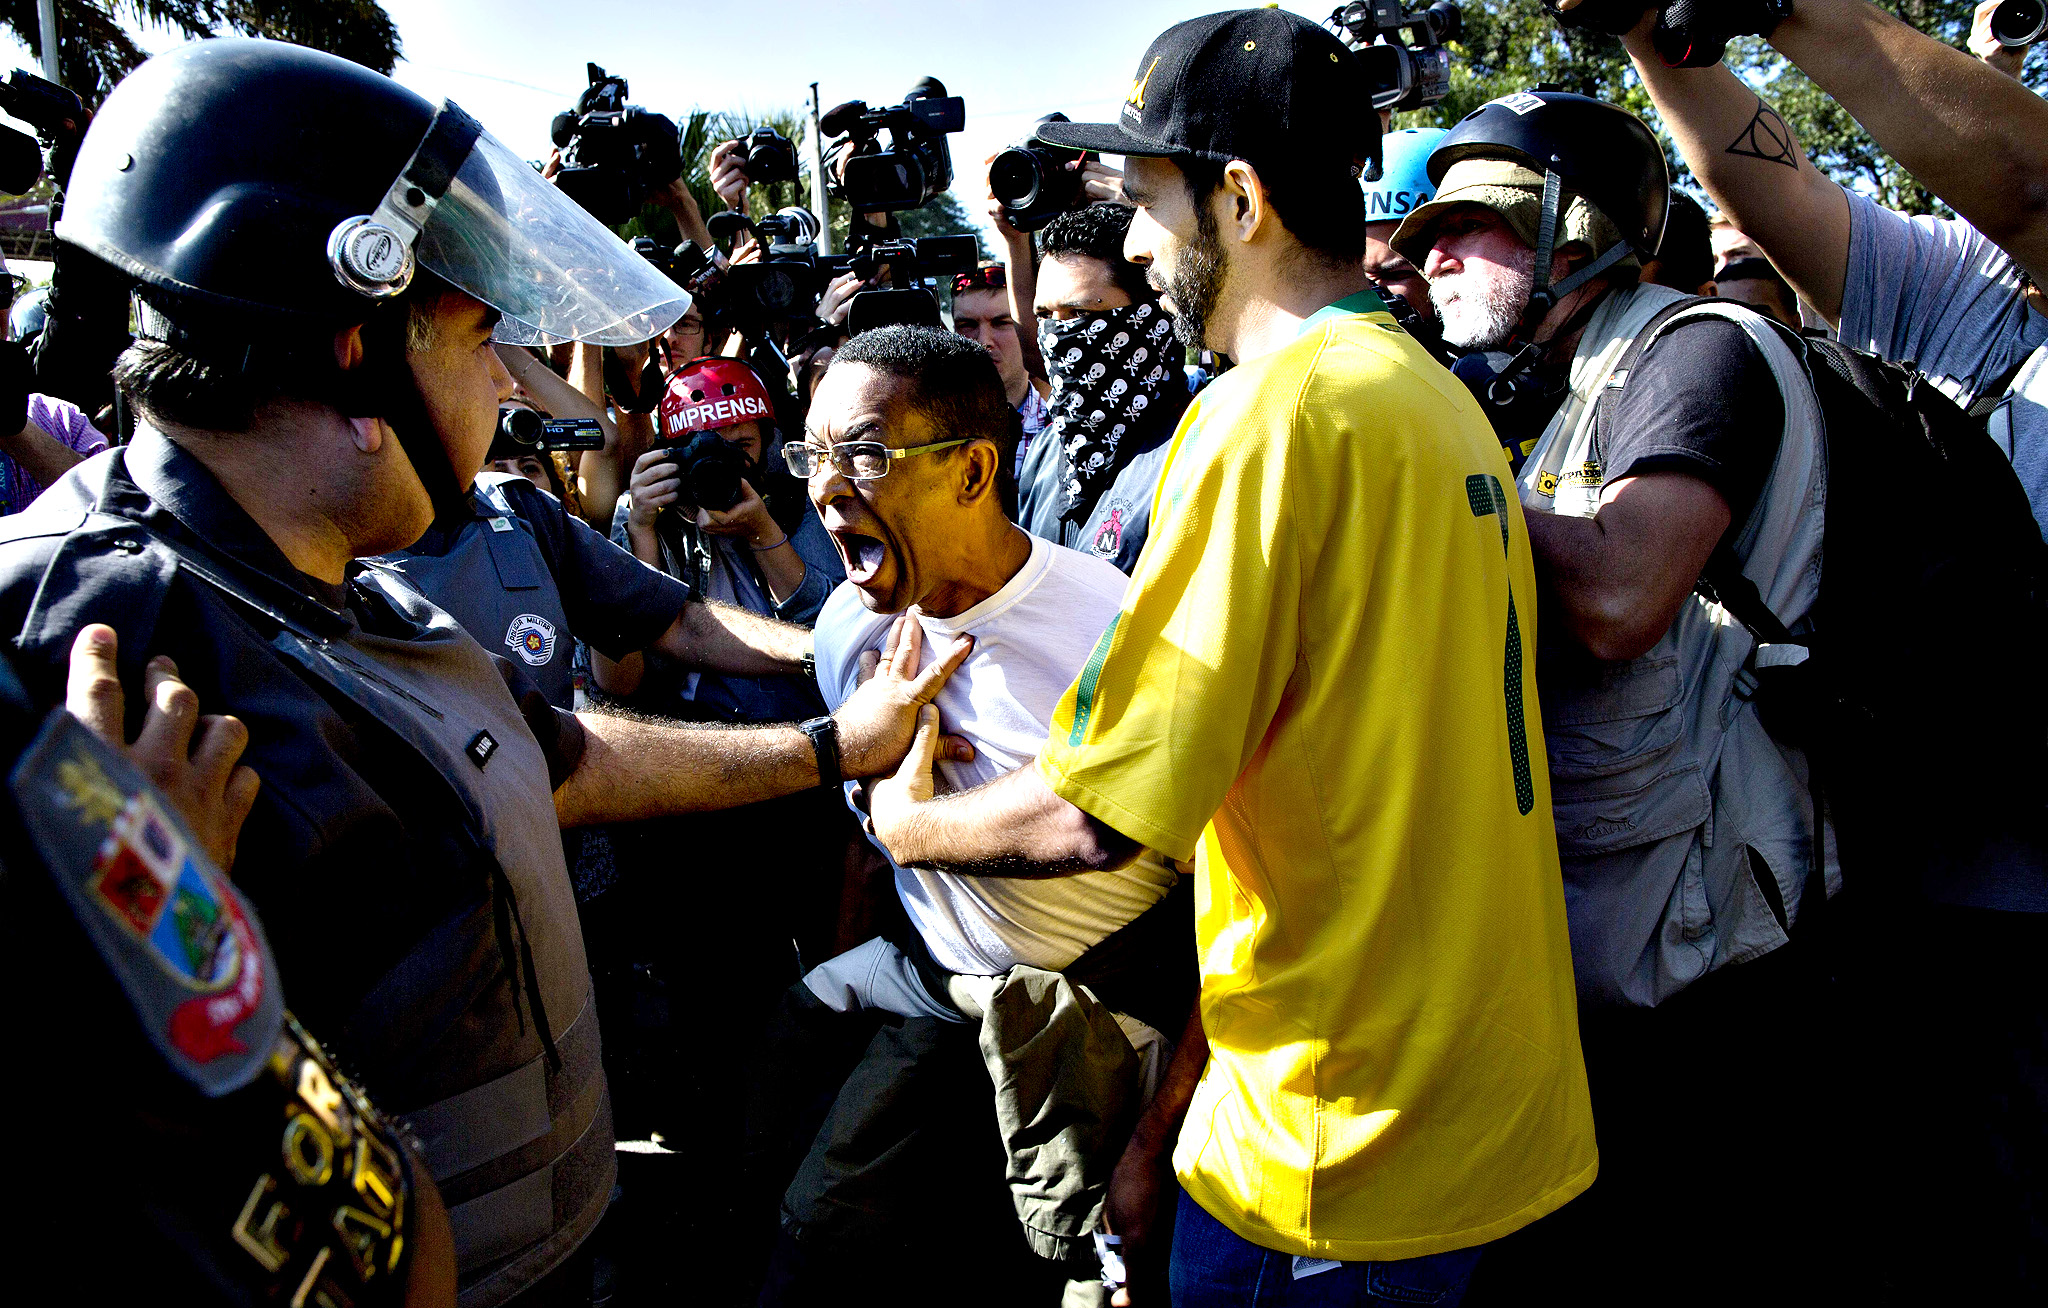 A protestor argues with police during a demonstration demanding better public services and protesting the money spent on the World Cup soccer tournament in Sao Paulo, Brazil, Thursday, June 12, 2014. Brazilian police  clashed with anti-World Cup protesters trying to block part of the main highway leading to the stadium that hosts the opening match of the tournament.